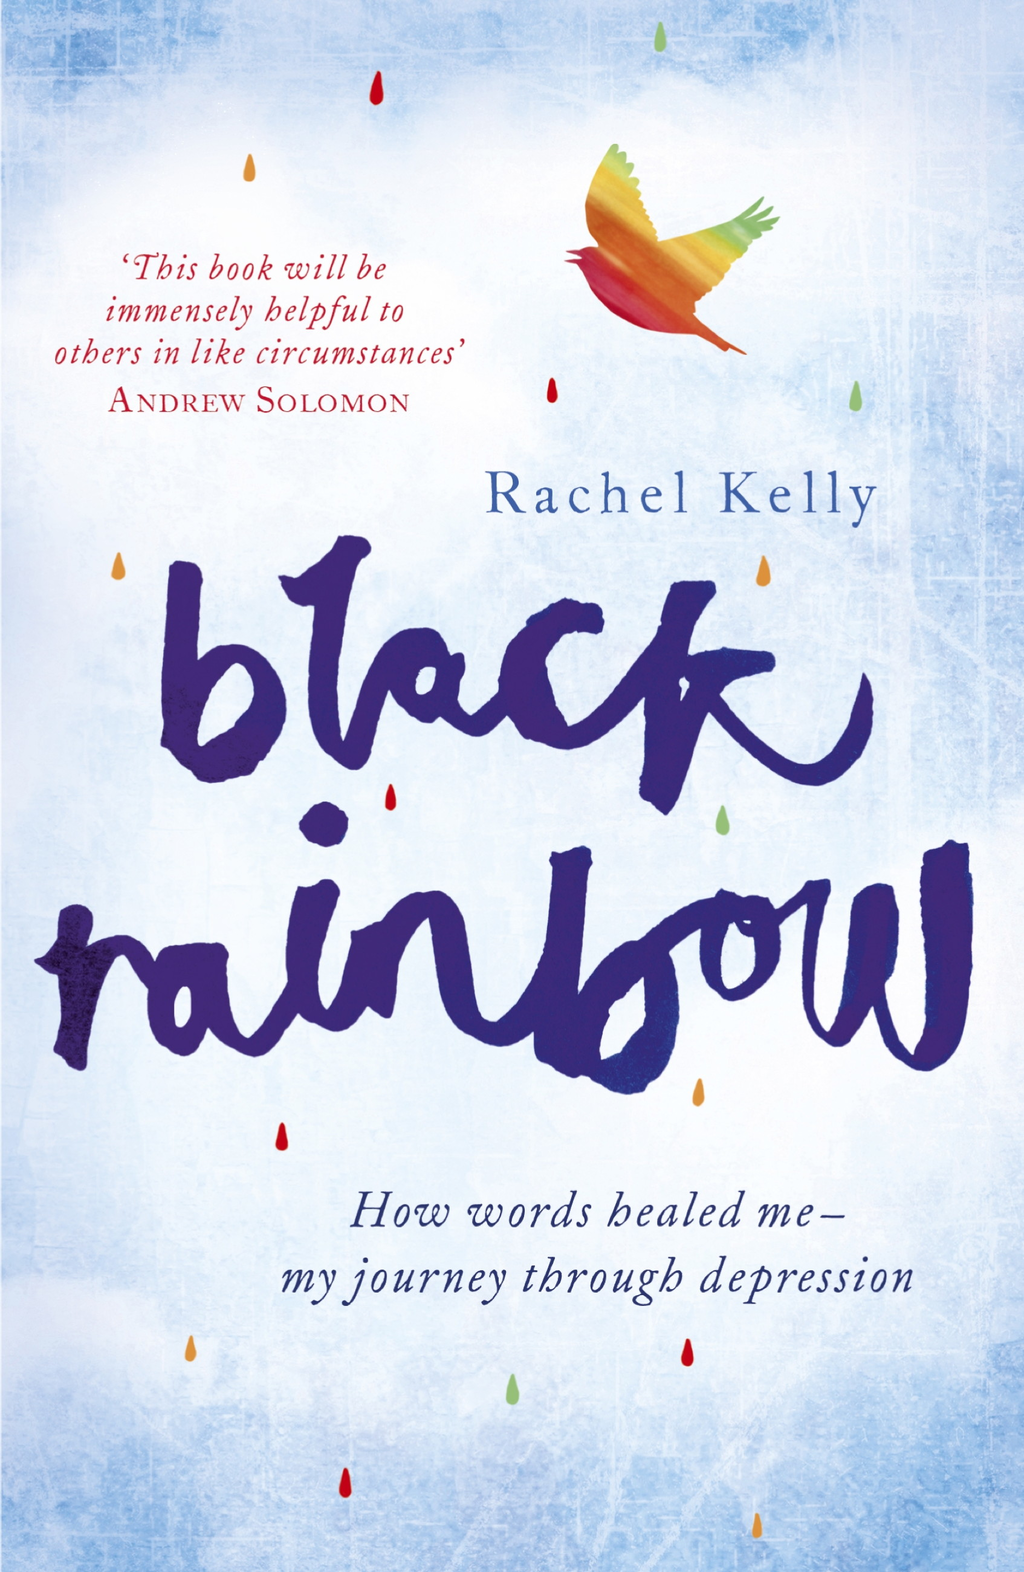 Black Rainbow How words healed me: my journey through depression